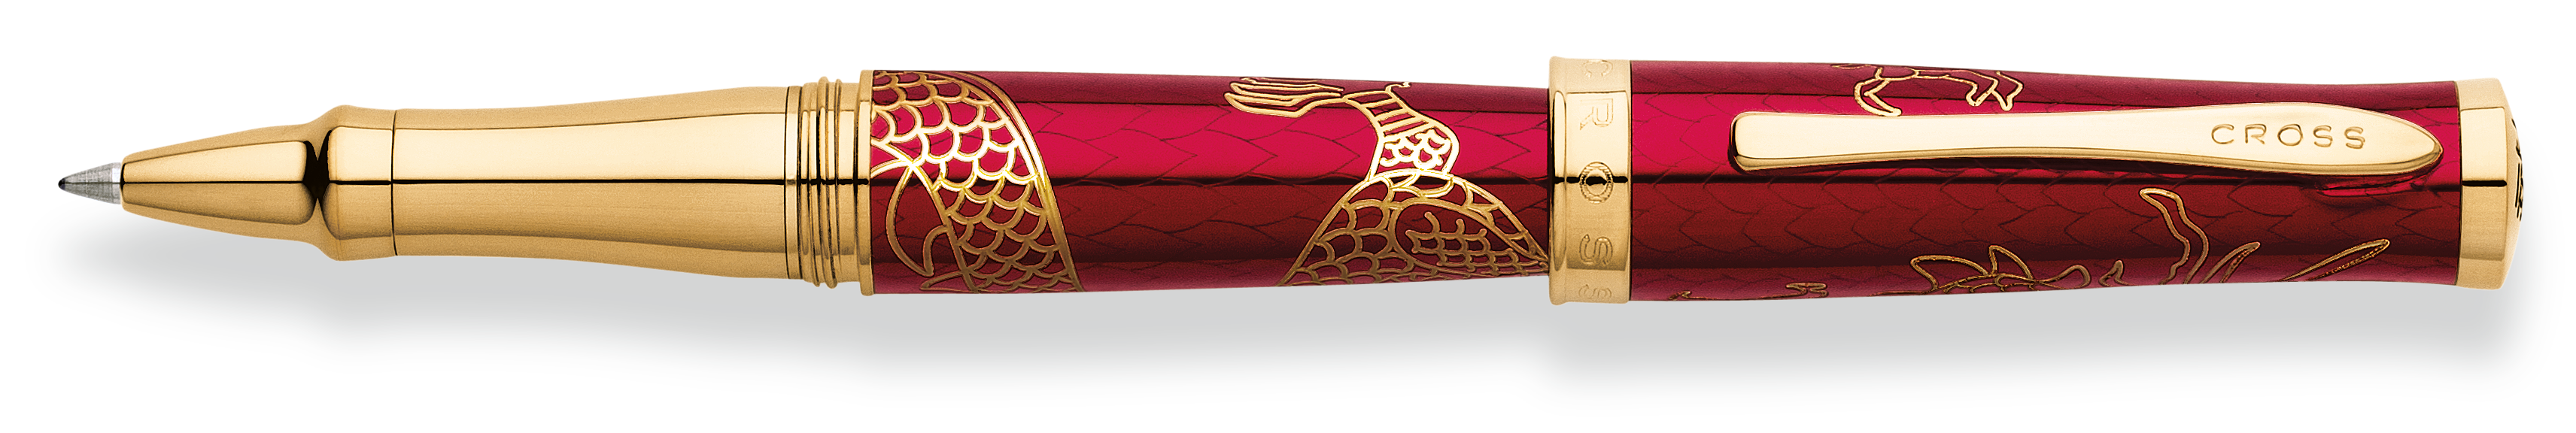 Cross 2012 Year of the Dragon Special-Edition Sauvage Rollerball Pen